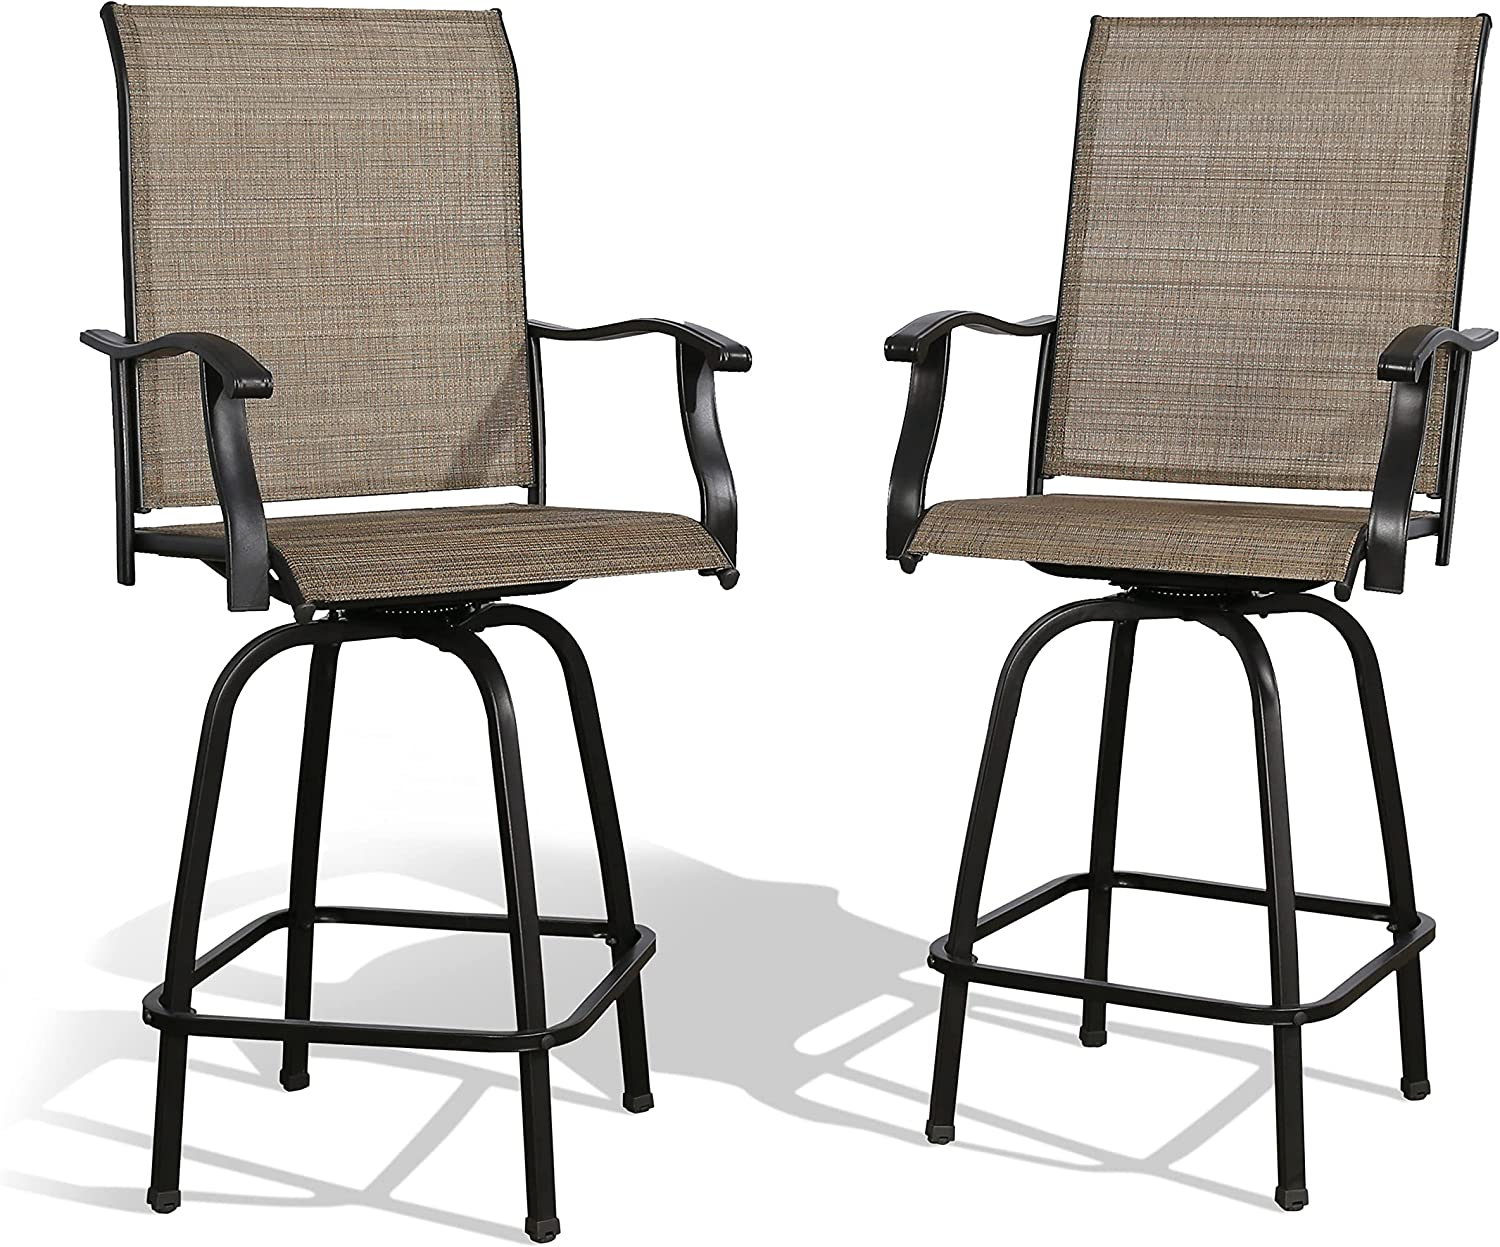 Iwicker Patio 2 PCS Swivel Height Mesh Textilene with Fresno Mall Beauty products Bar Chairs